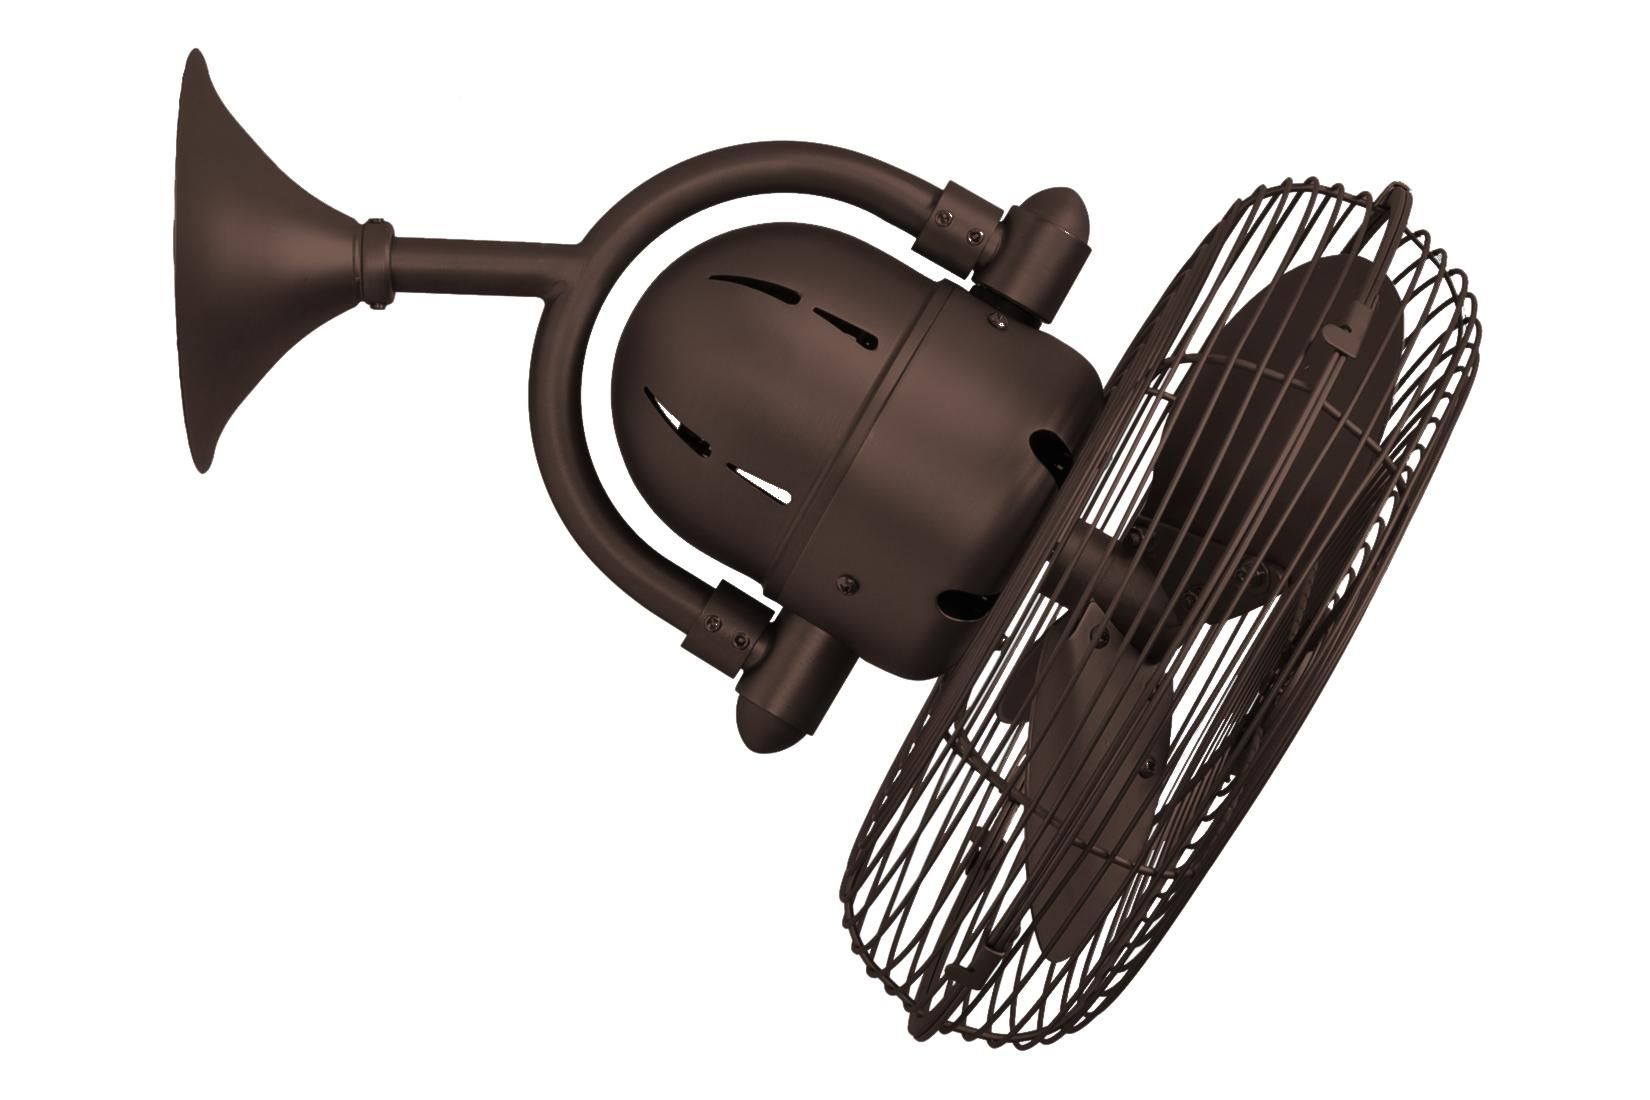 Brackets For Wall Mount Oscillating Fans : Oscillating wall mounted fans larger picture of